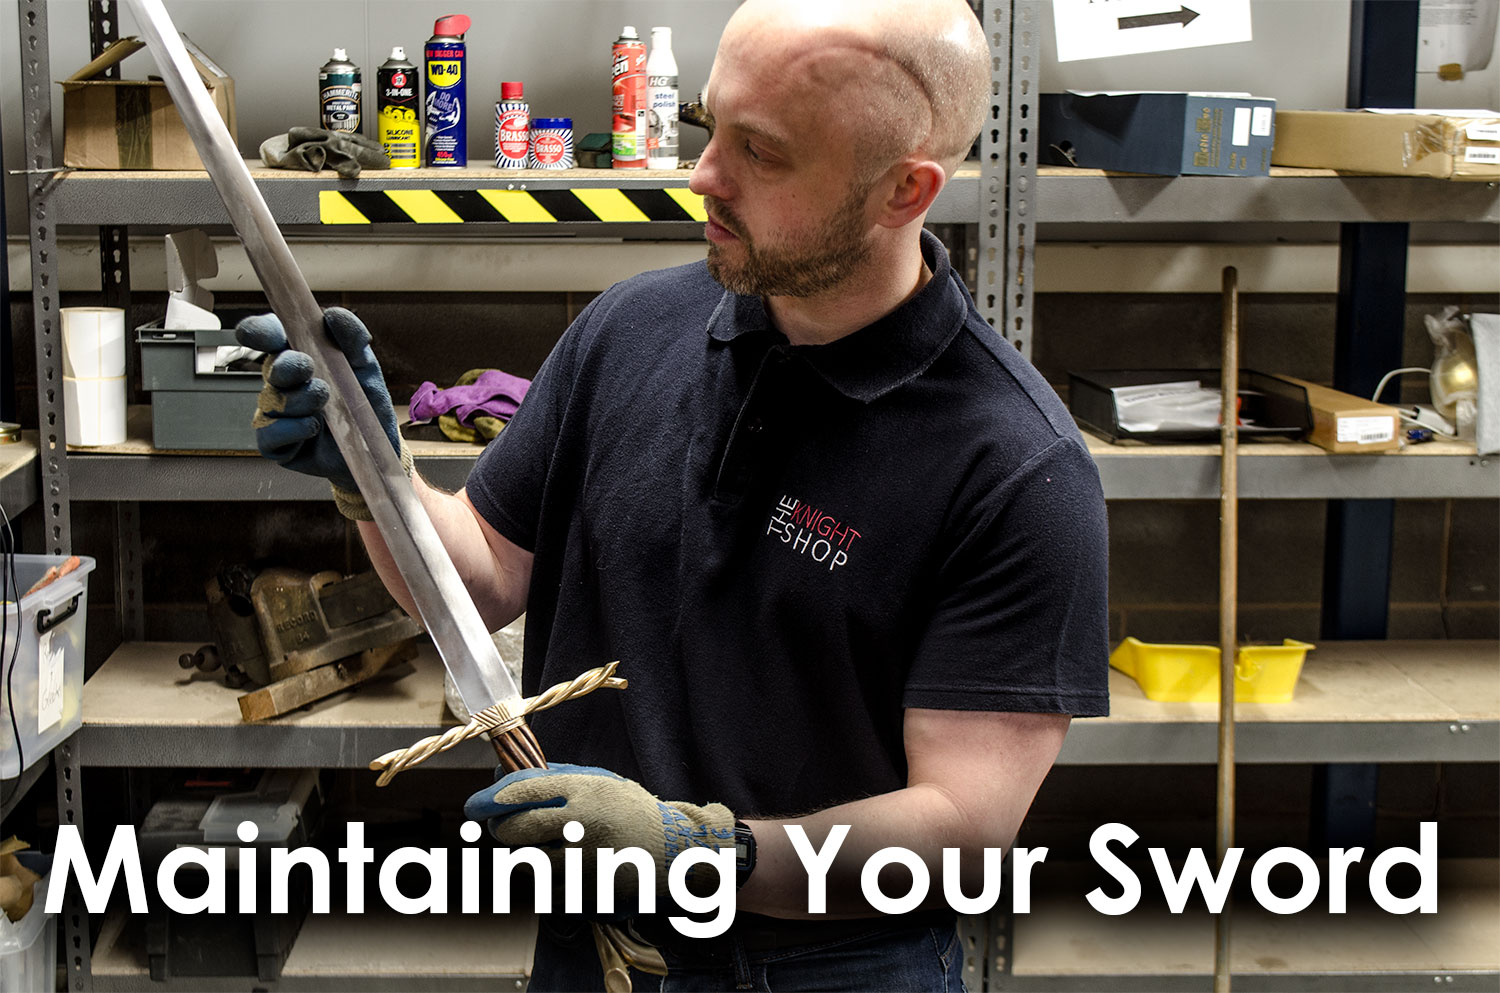 Sword Maintenance Guide | The Knight Blog